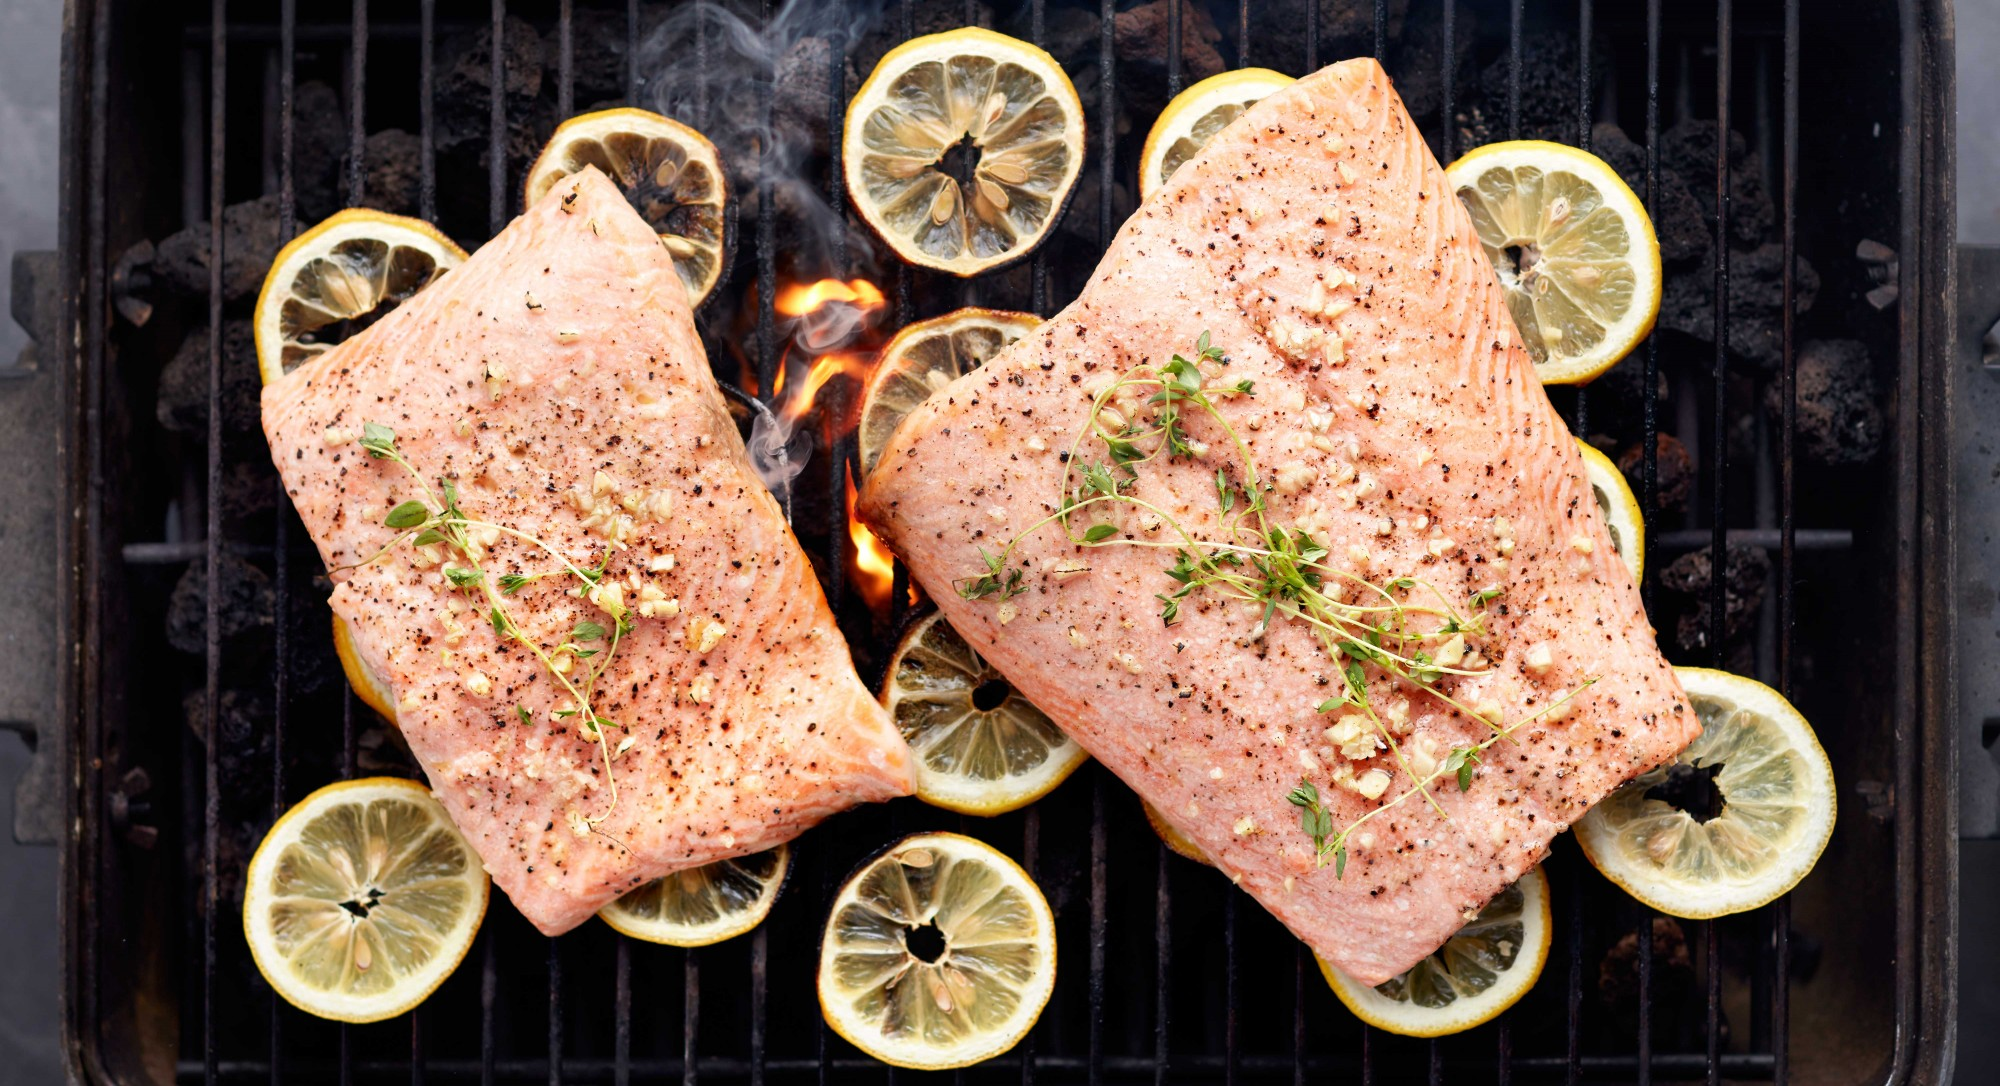 Tip of the Week: A Foolproof Way to Keep Fish From Sticking to the Grill